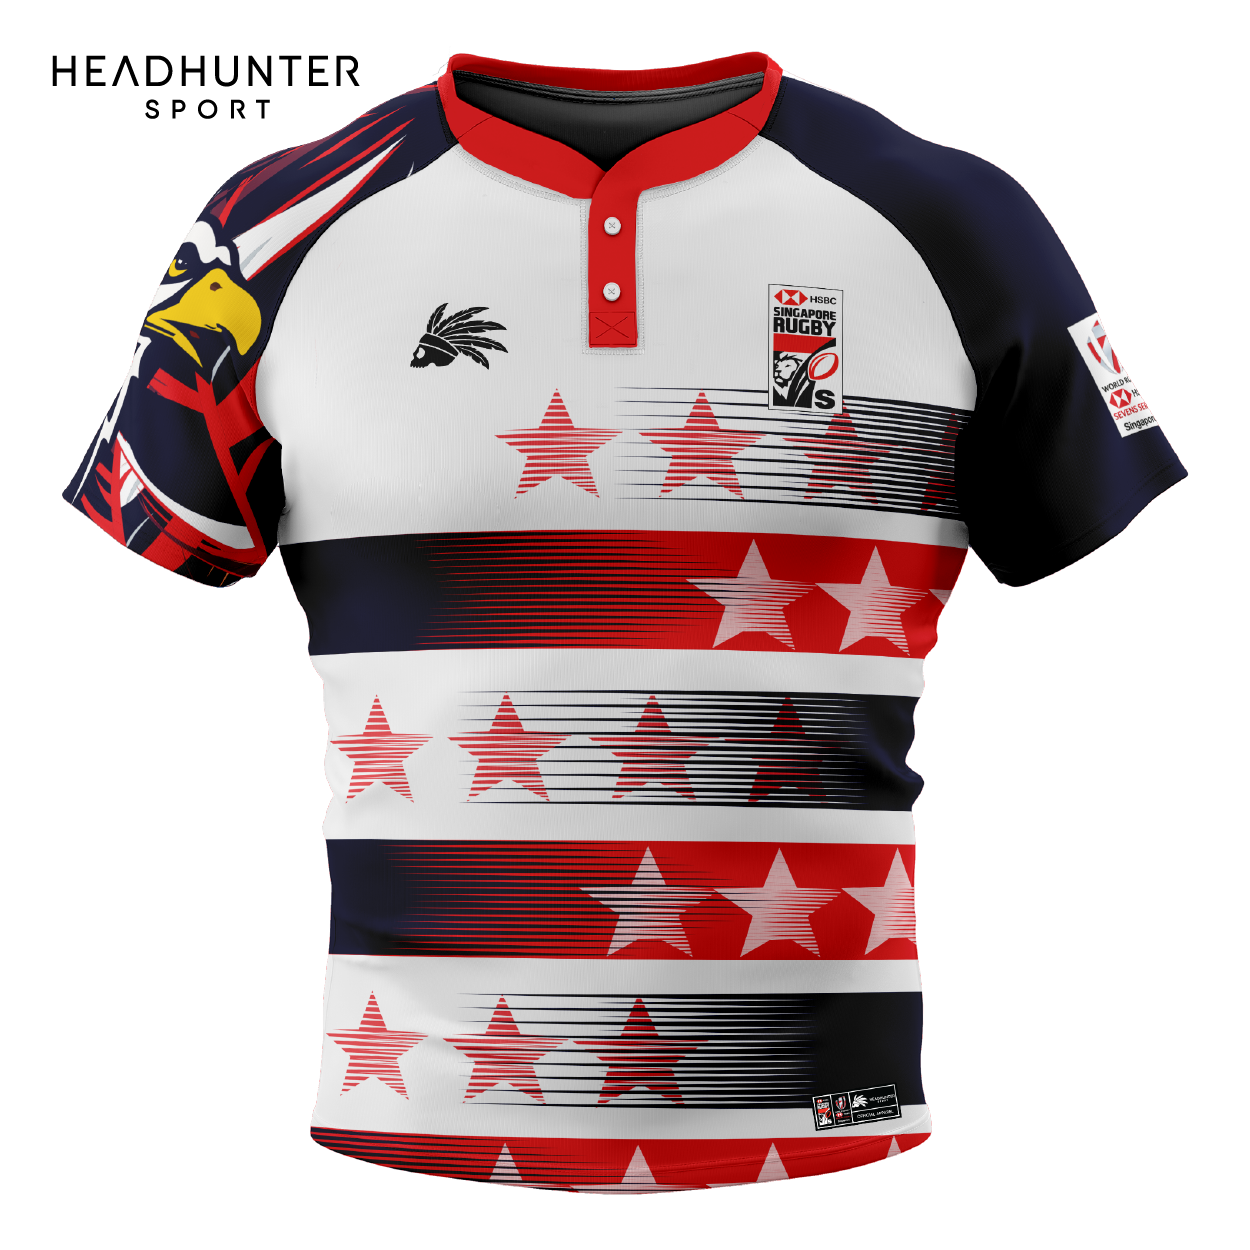 HSBC RUGBY 7S SERIES SINGAPORE 2019 MERCHANDISE USA JERSEY